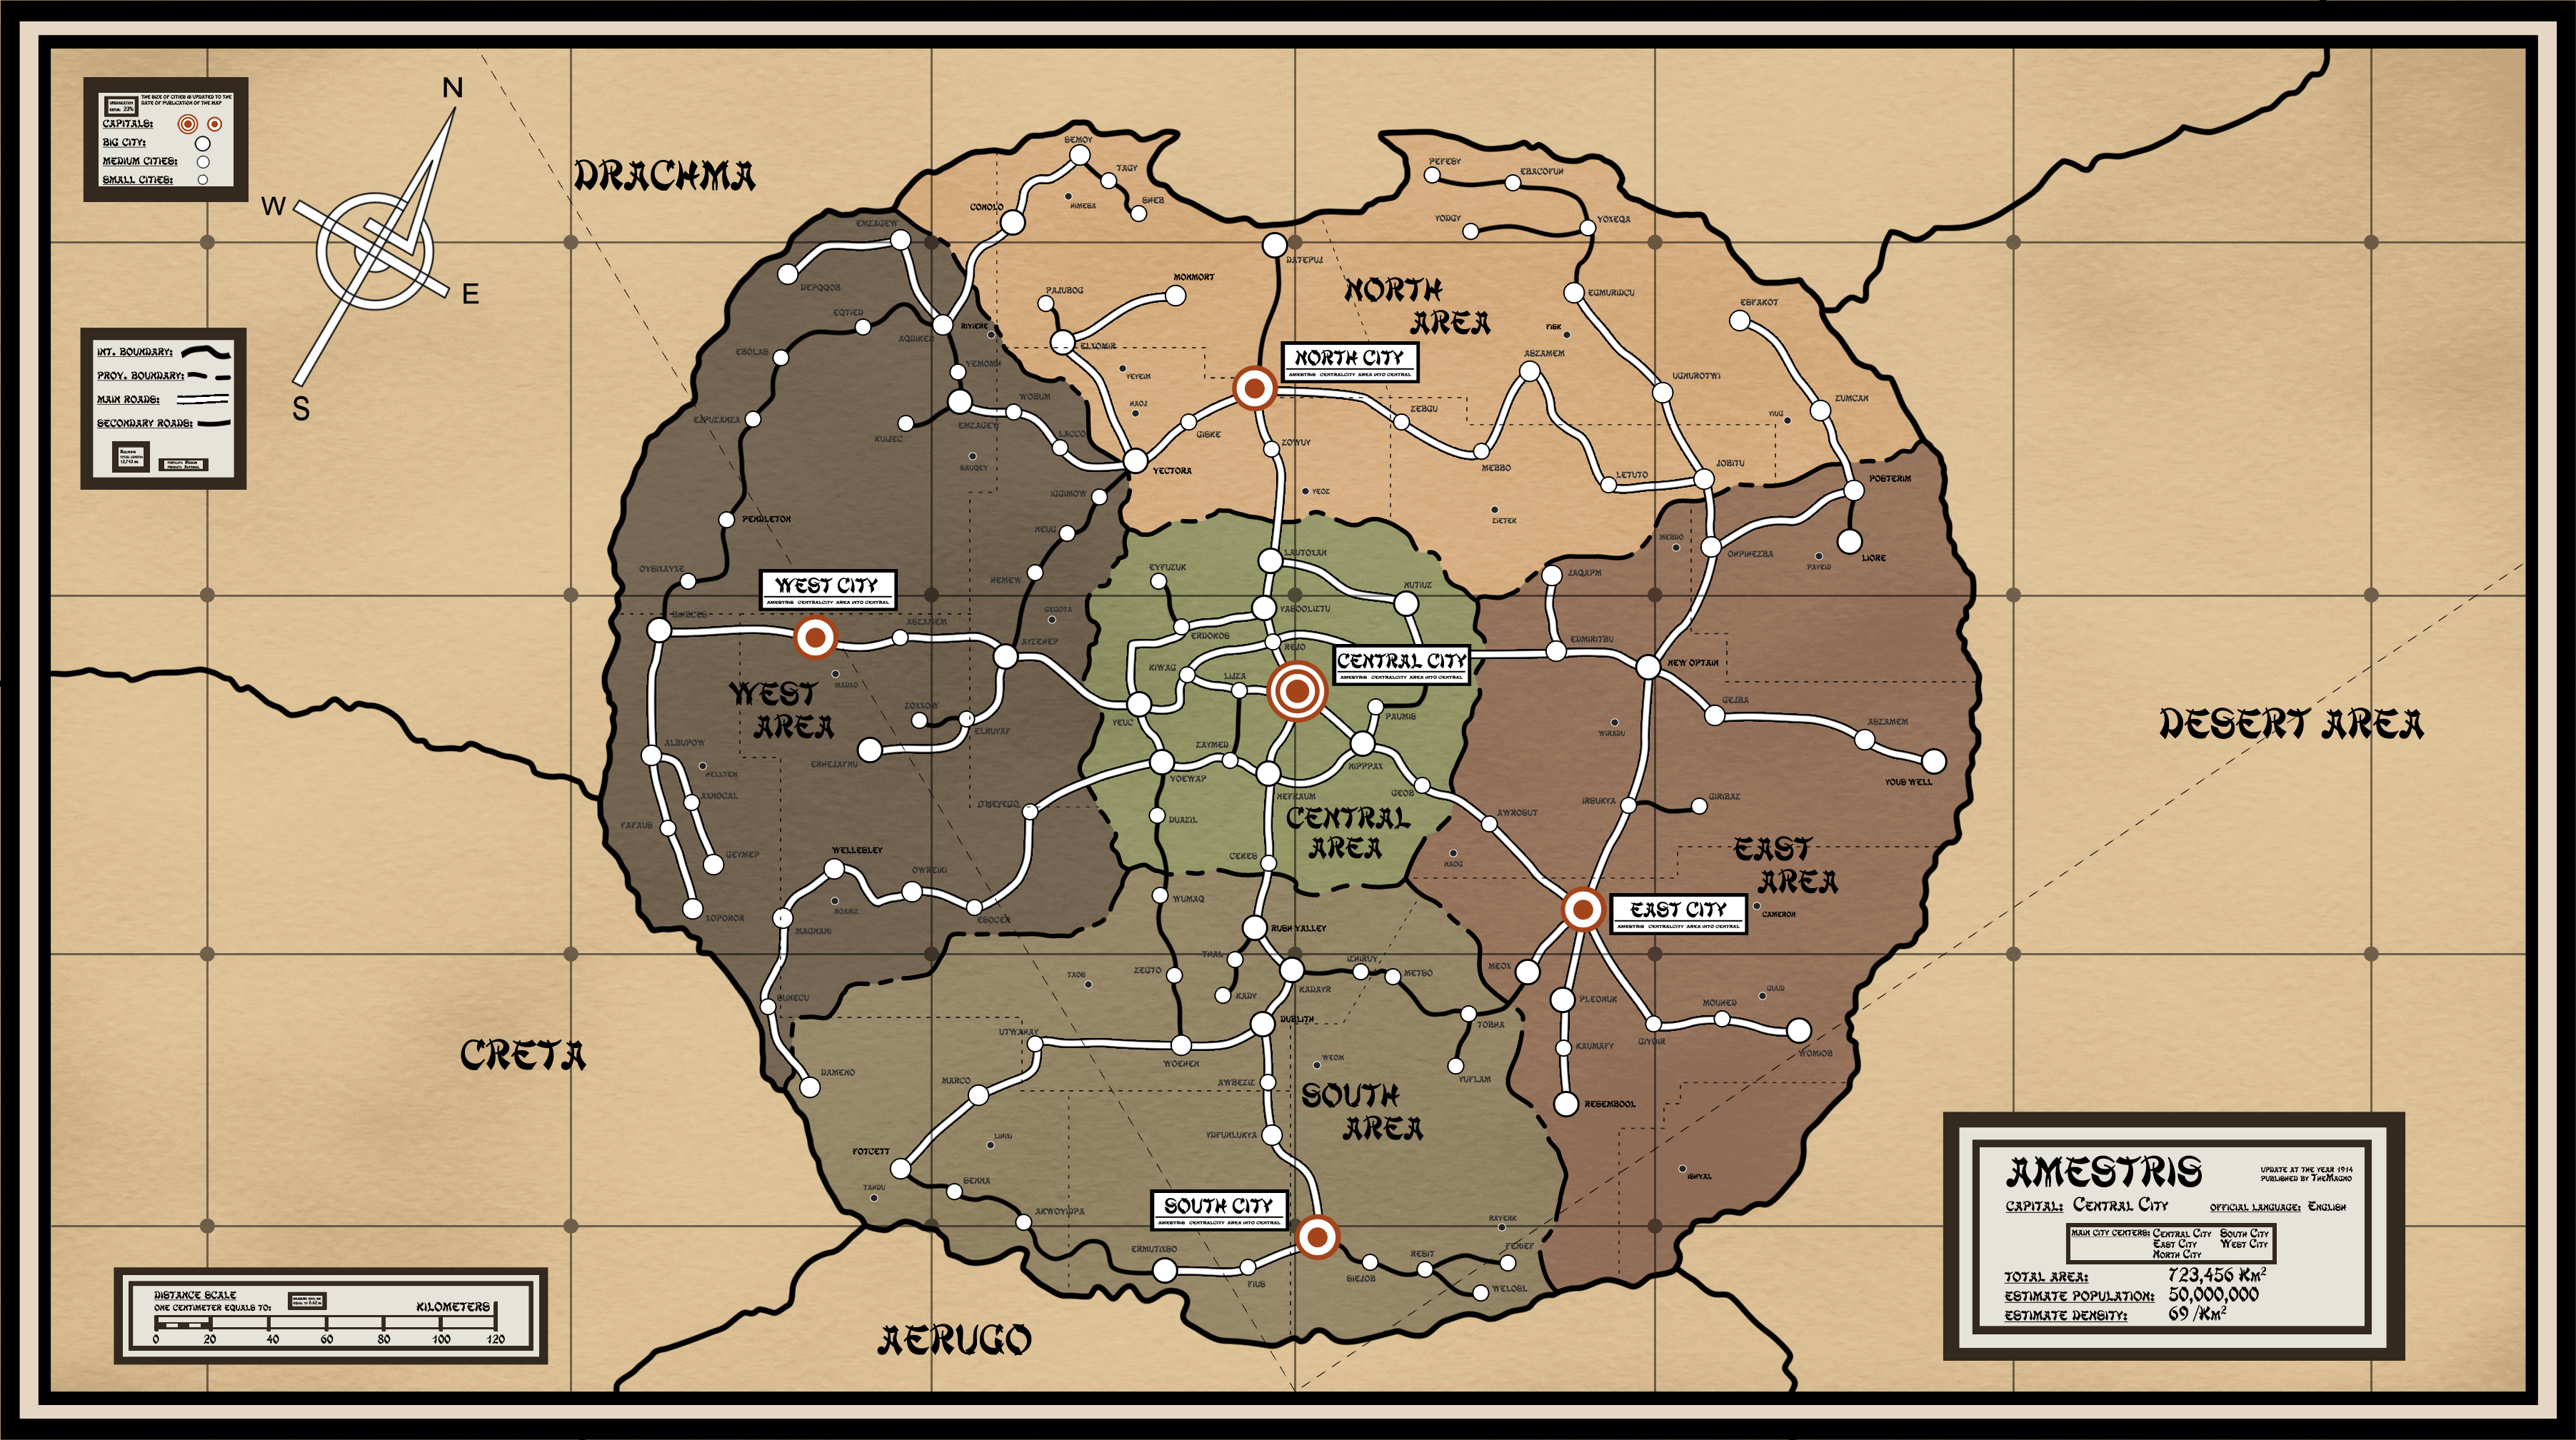 heroes of alchemy chapter 1 aseies himaryan percy jackson we suggest referring to this map